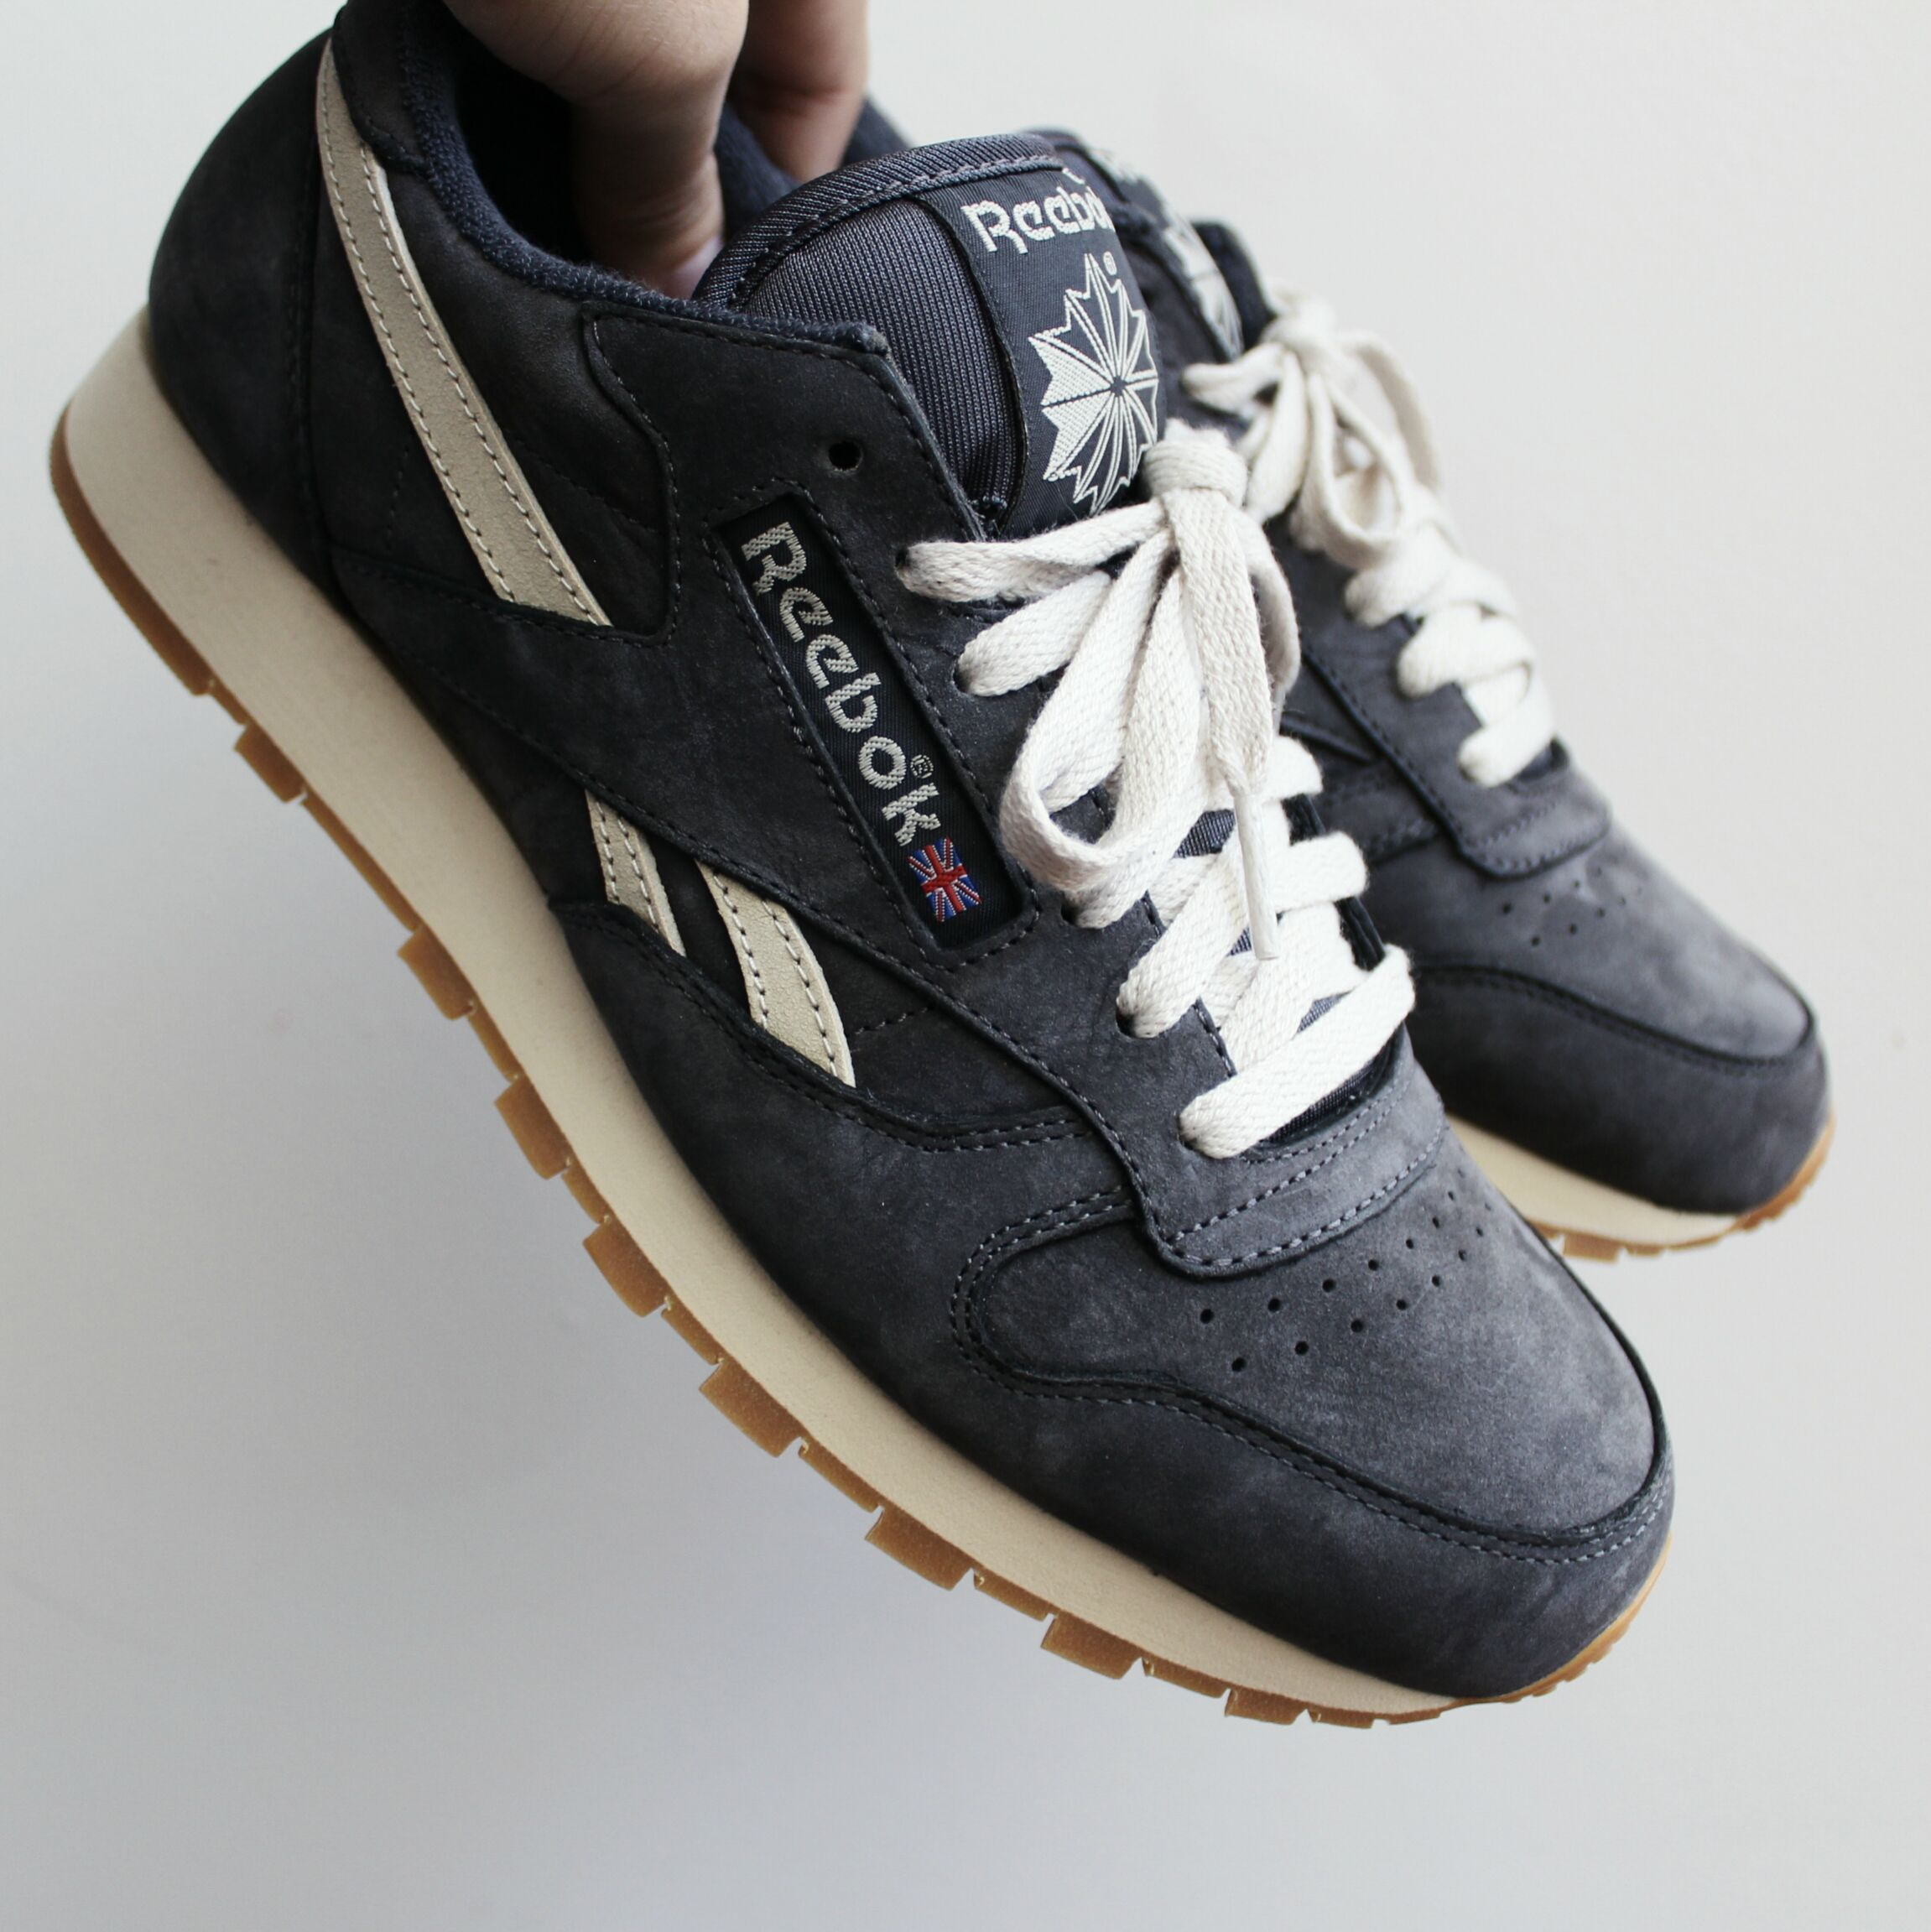 0c3ad9fd3e7 Reebok Classic Leather Vintage Retro Suede (J93612) Tags  sneakers ...